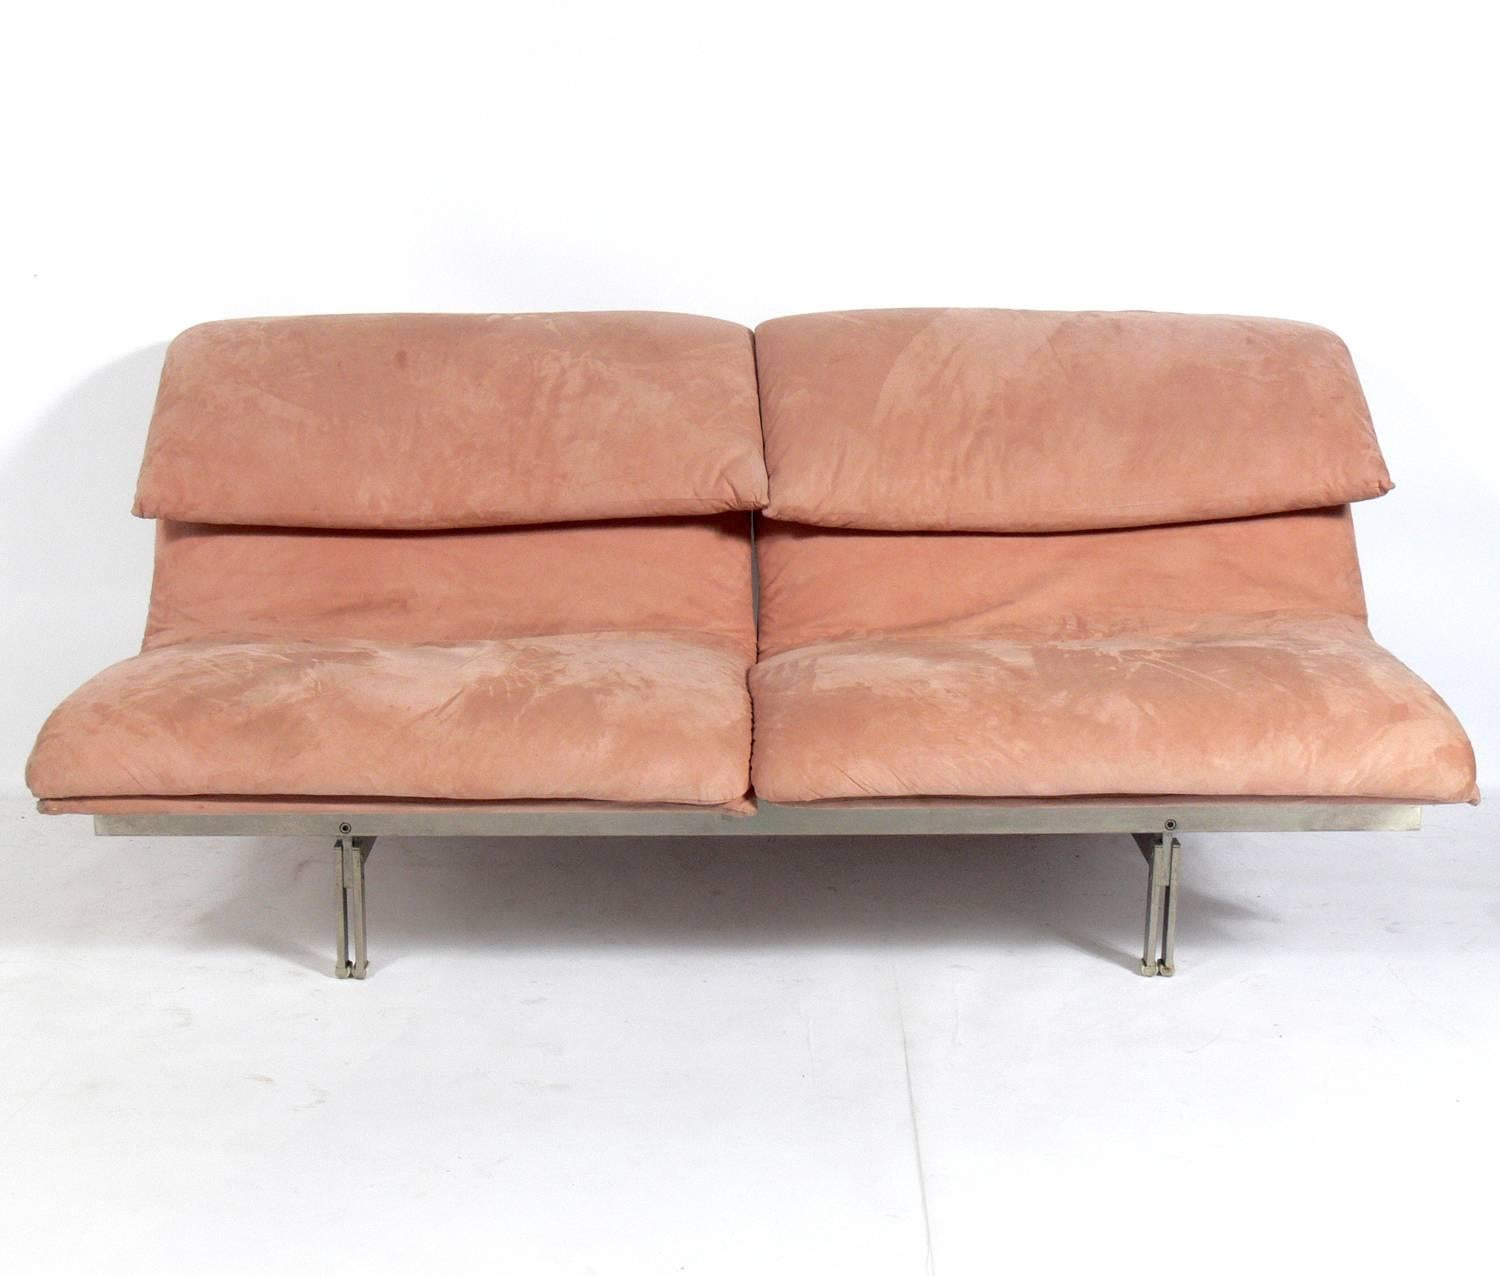 Pair Of Curvaceous Italian Sofas Or Settees By Saporiti, Italy, Circa  1980s. They